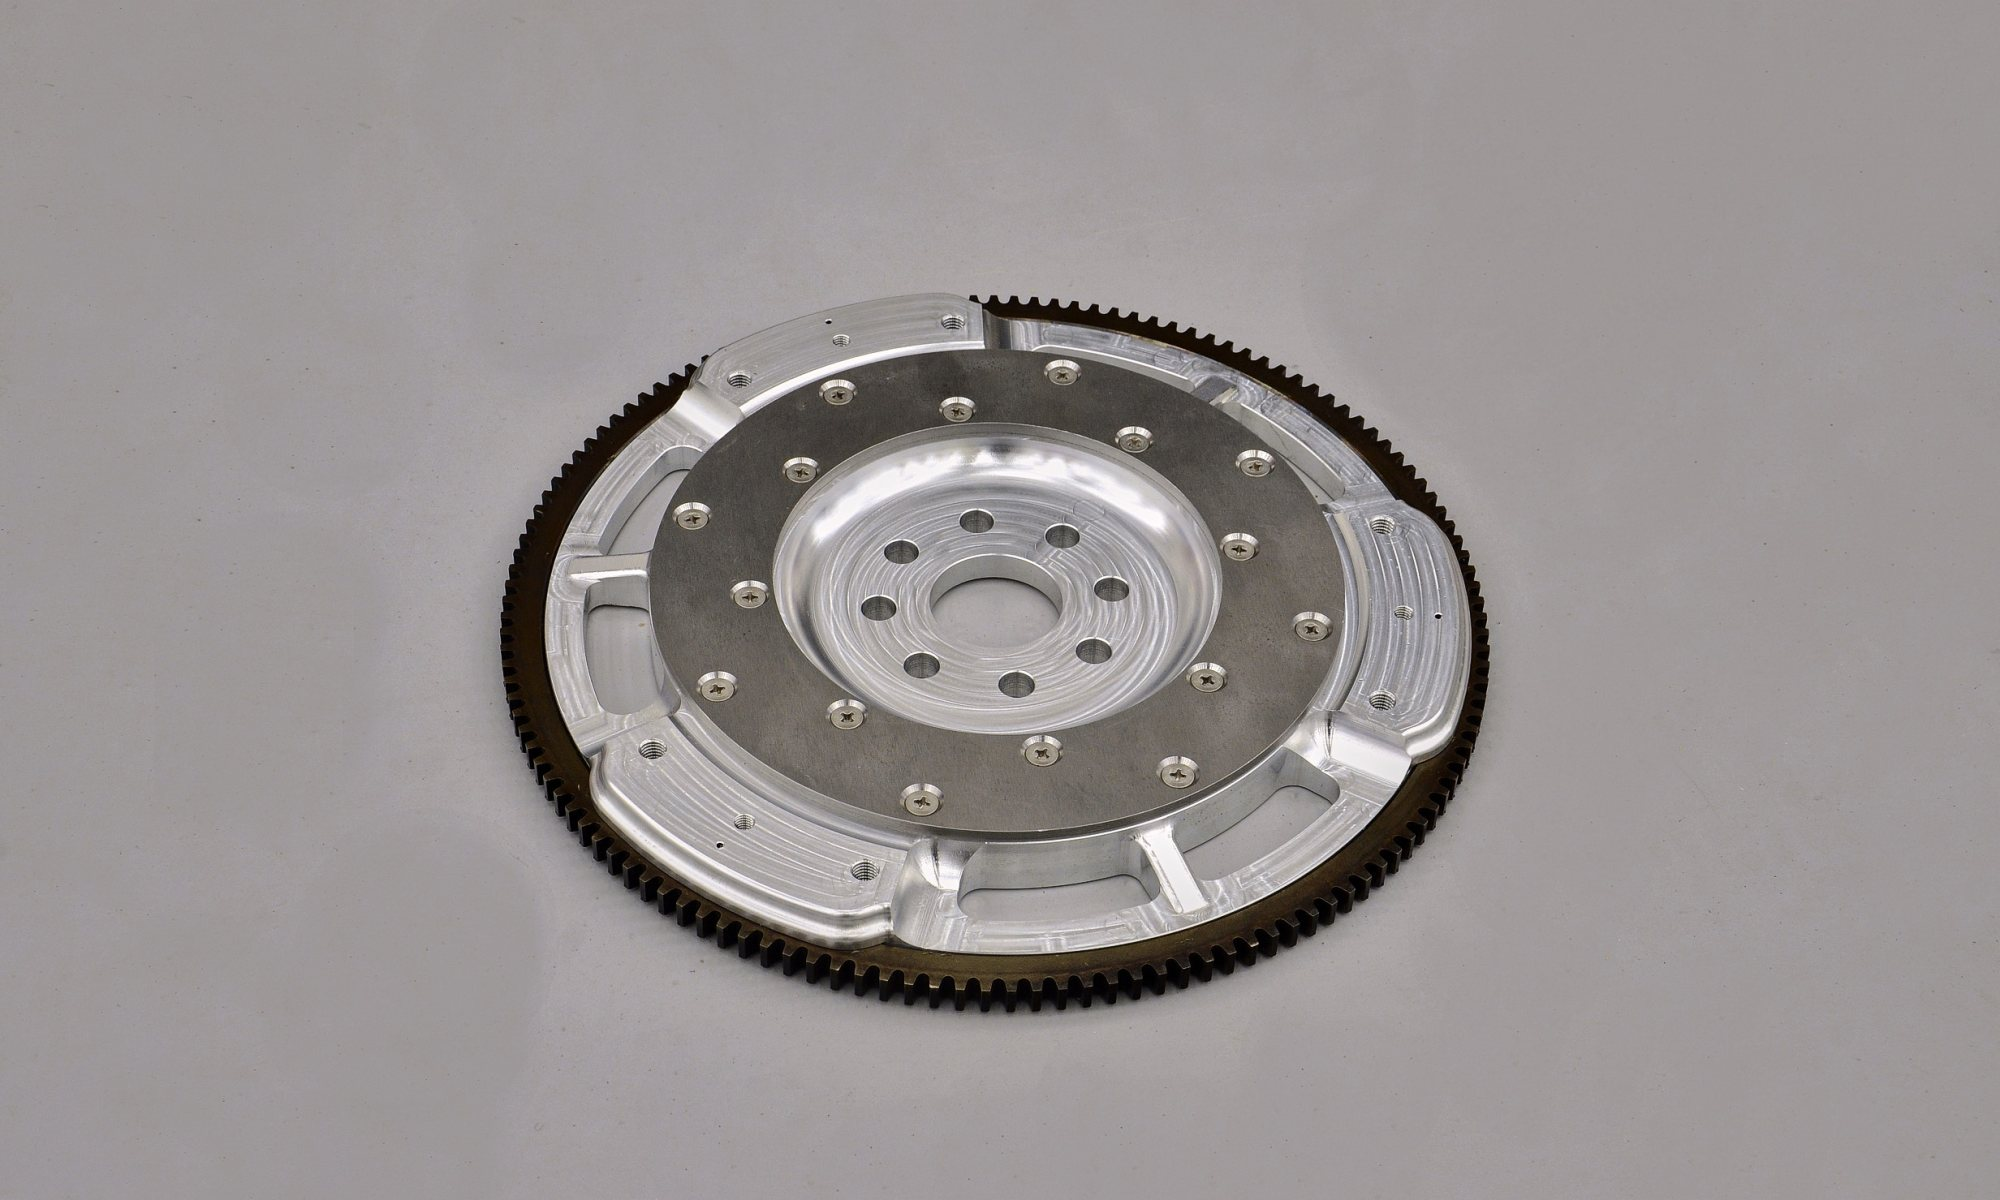 Z20NET lightweight flywheel